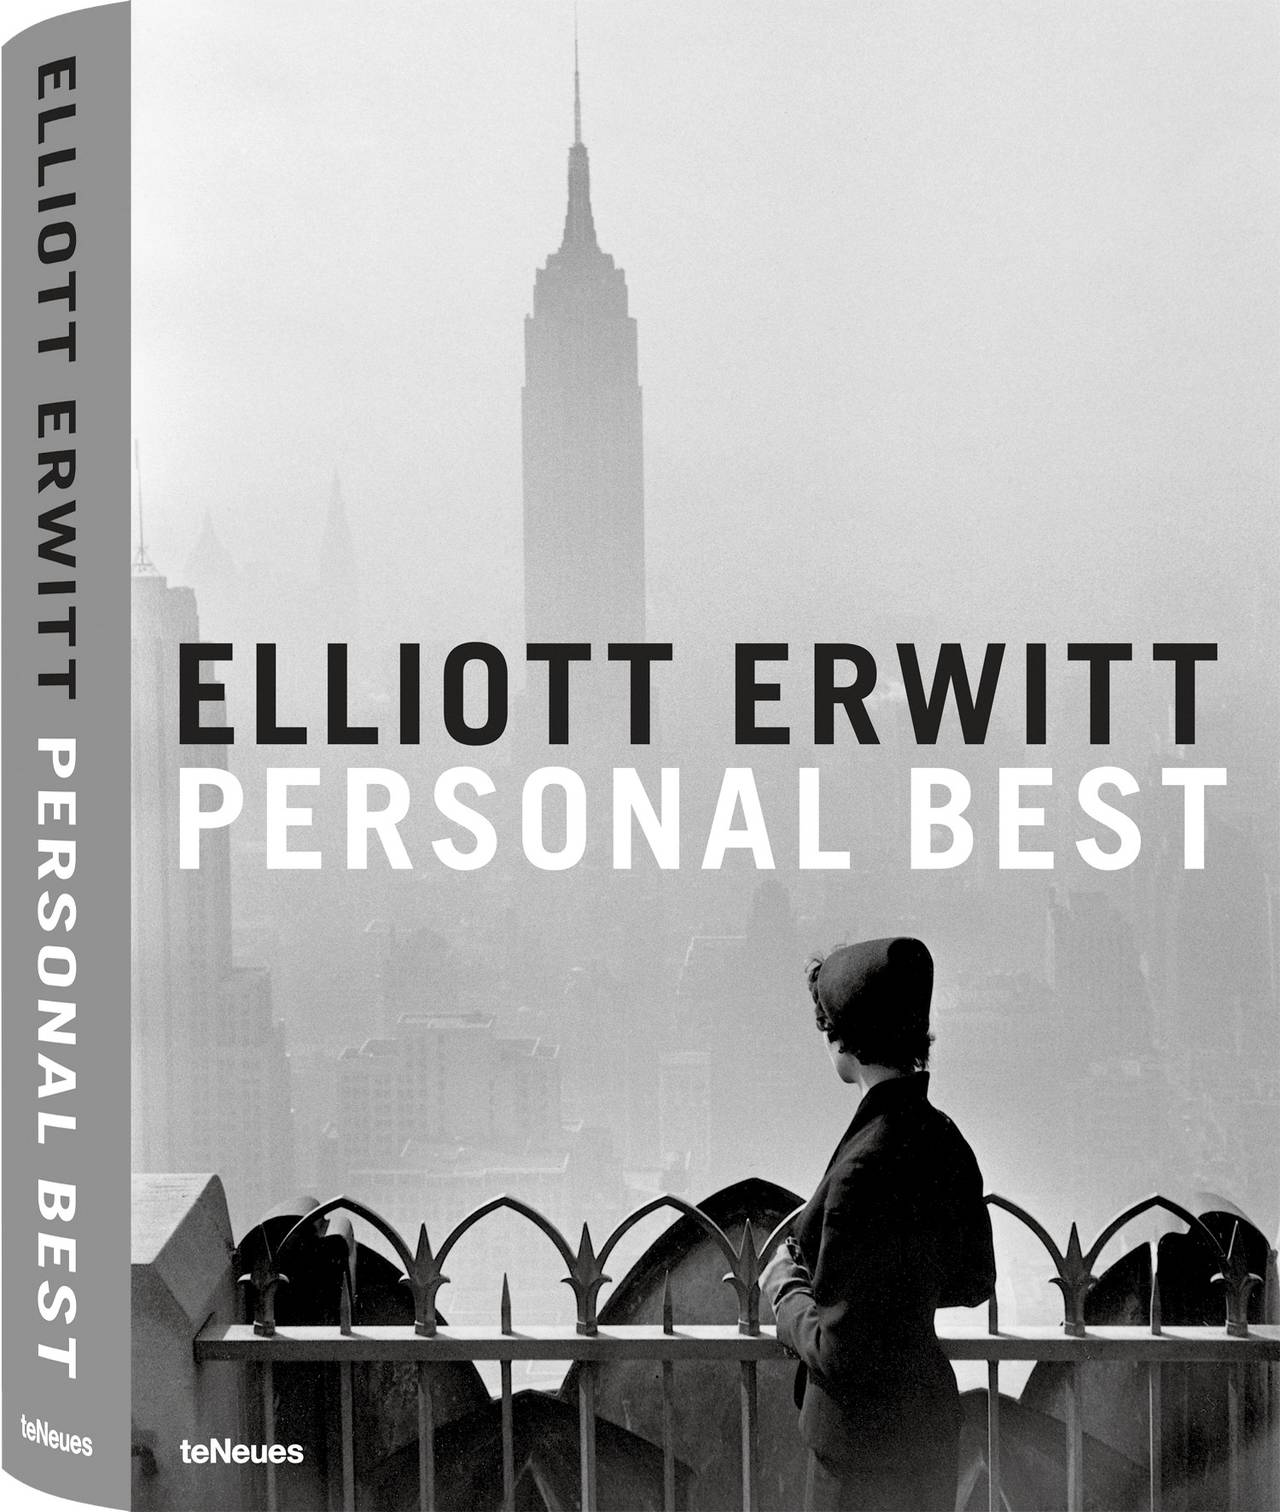 © Personal Best by Elliott Erwitt Small Format Hardcover Edition, New York City, 1955, published by teNeues, www.teneues.com. Photo © 2014 Elliott Erwitt/Magnum Photos, All rights reserved. www.elliotterwitt.com